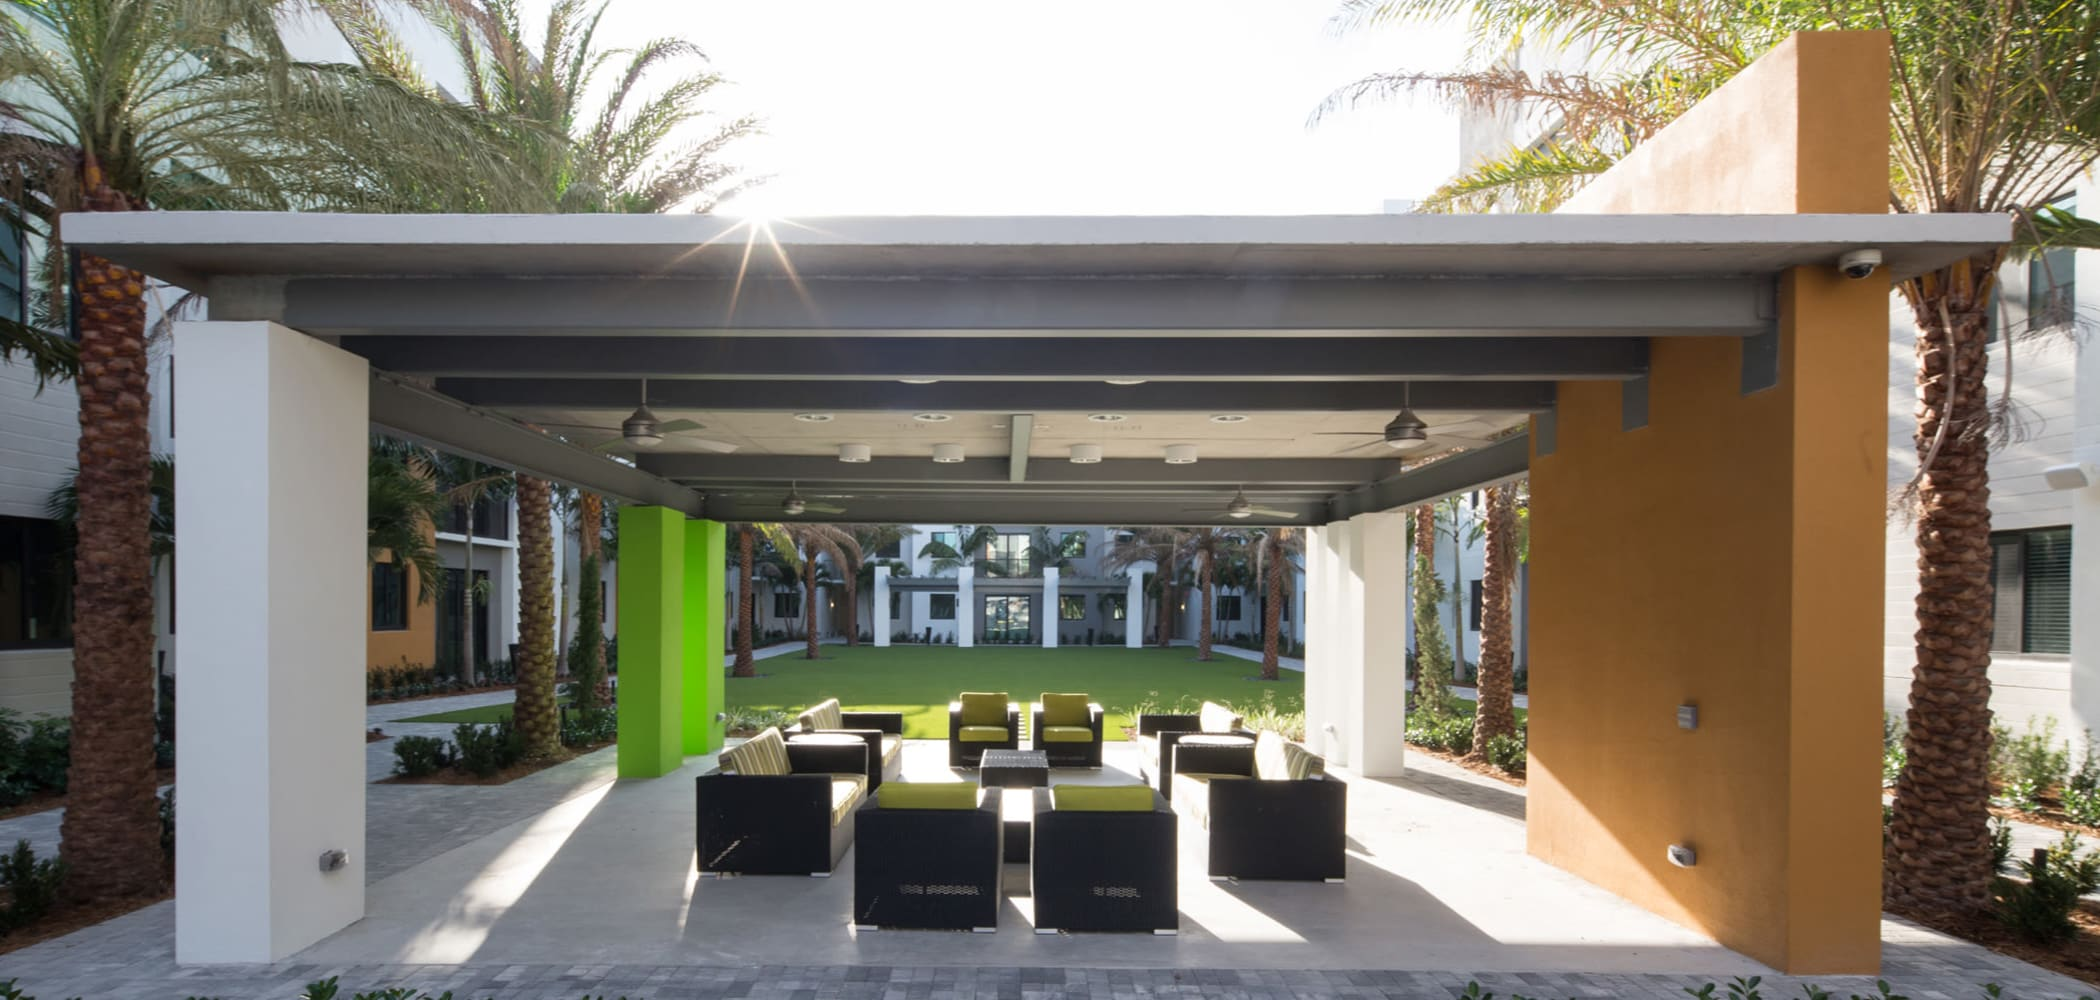 Outdoor covered seating area at University Park in Boca Raton, Florida